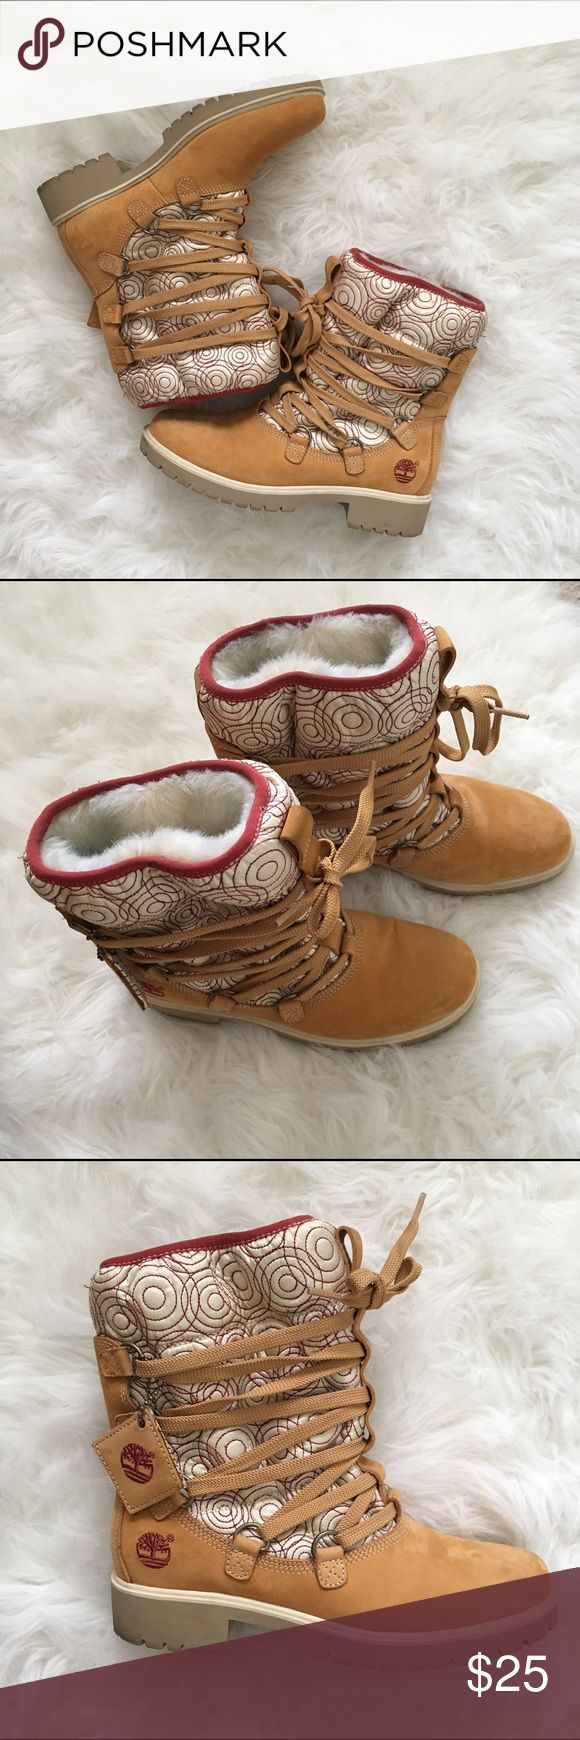 Timberland Boots‼️ Unique but fun Timberland boots. Fur on the inside with maroon circles against creme exterior. Gently used with blue denim stain on the inside of the boot. Boot indicates size 7.5M but runs small. I wear a 7 in Kids but that's cutting it close. I'd suggest at 6.5 in Kids. Timberland Shoes Boots